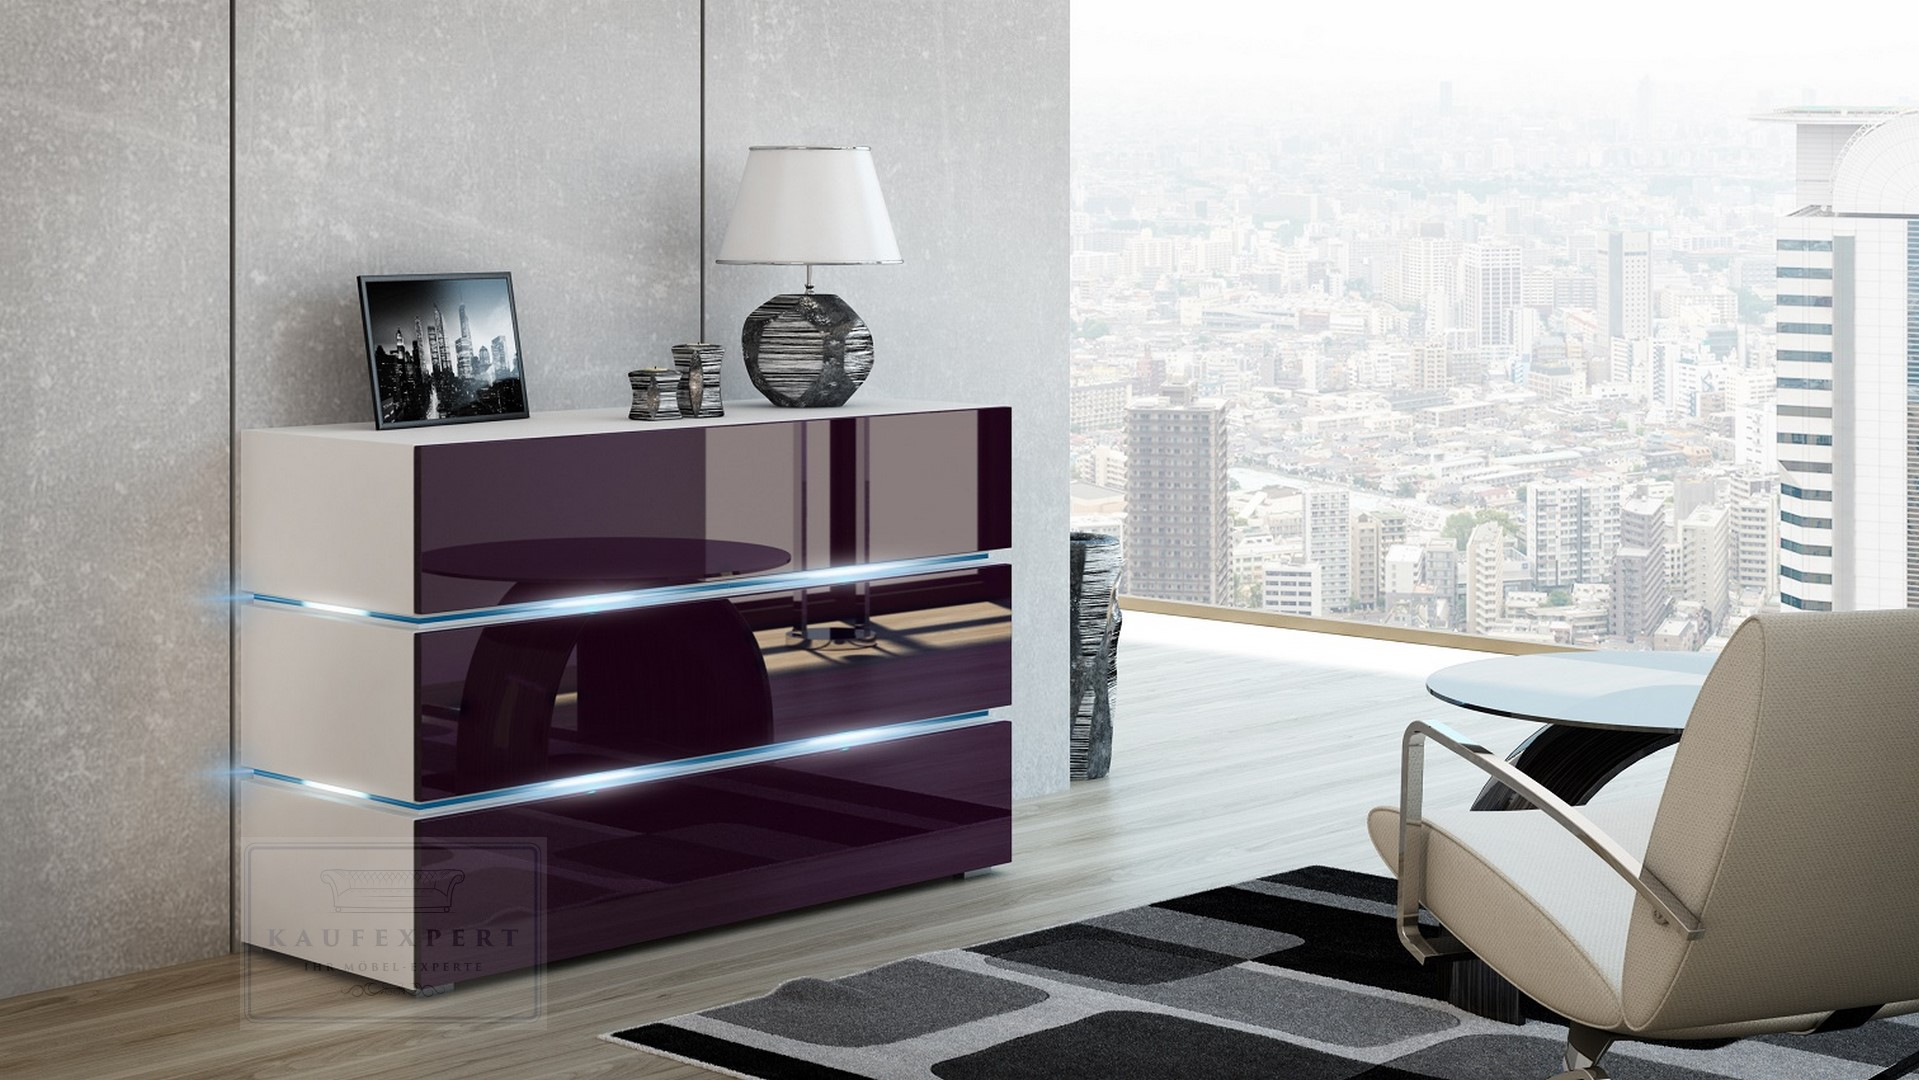 kaufexpert kommode shine sideboard 120 cm aubergine hochglanz wei led beleuchtung modern. Black Bedroom Furniture Sets. Home Design Ideas